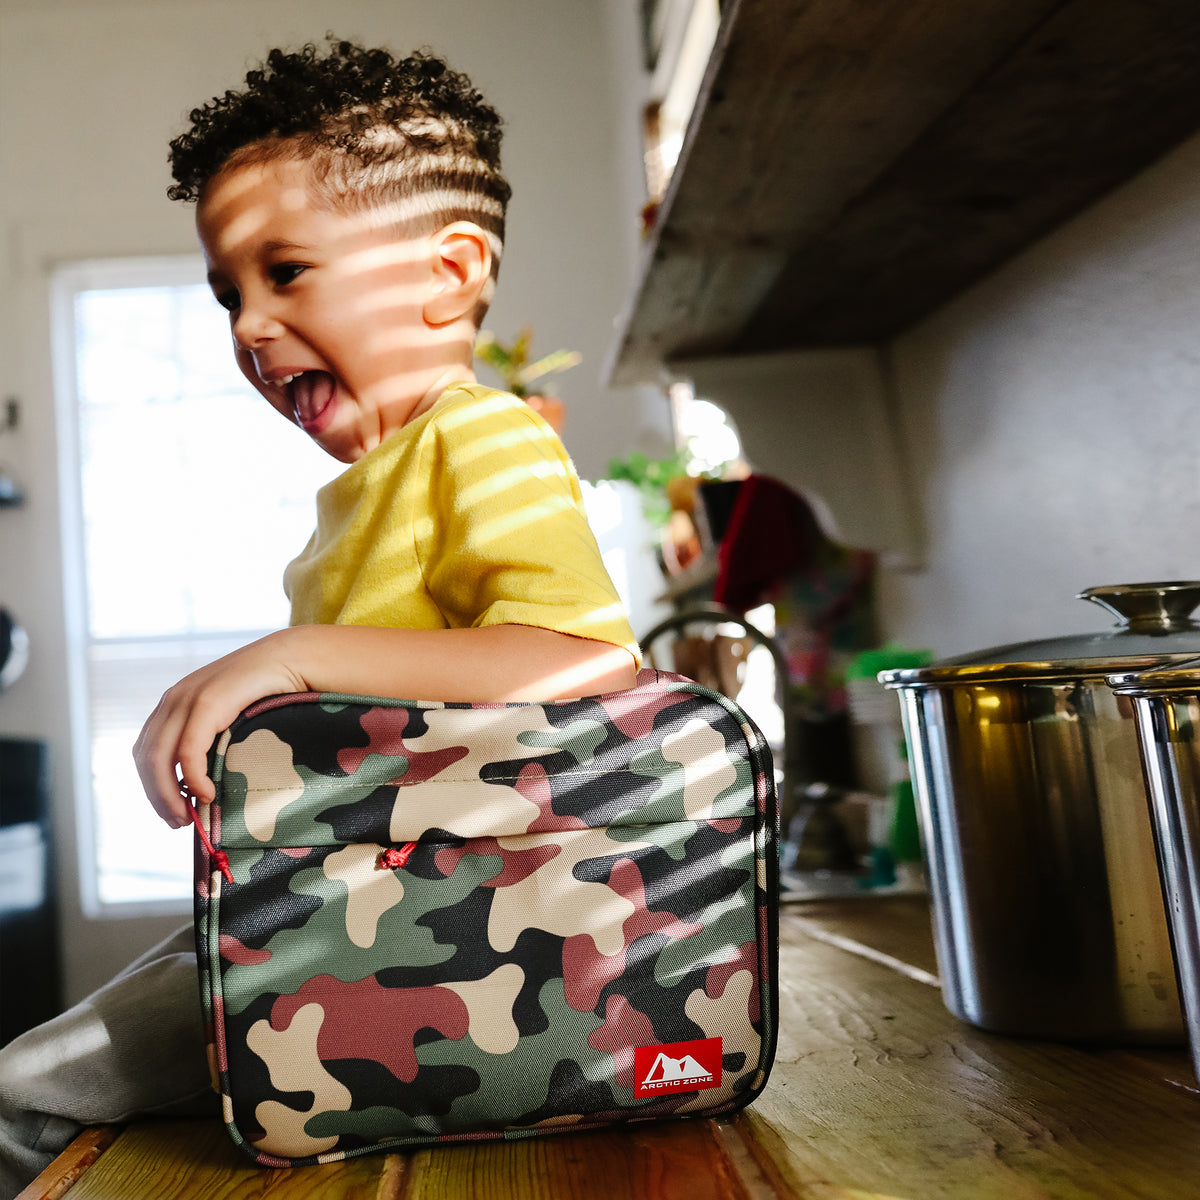 Arctic Zone® Classics Lunch Box - Camo - Lifestyle, Son helping mom with lunch